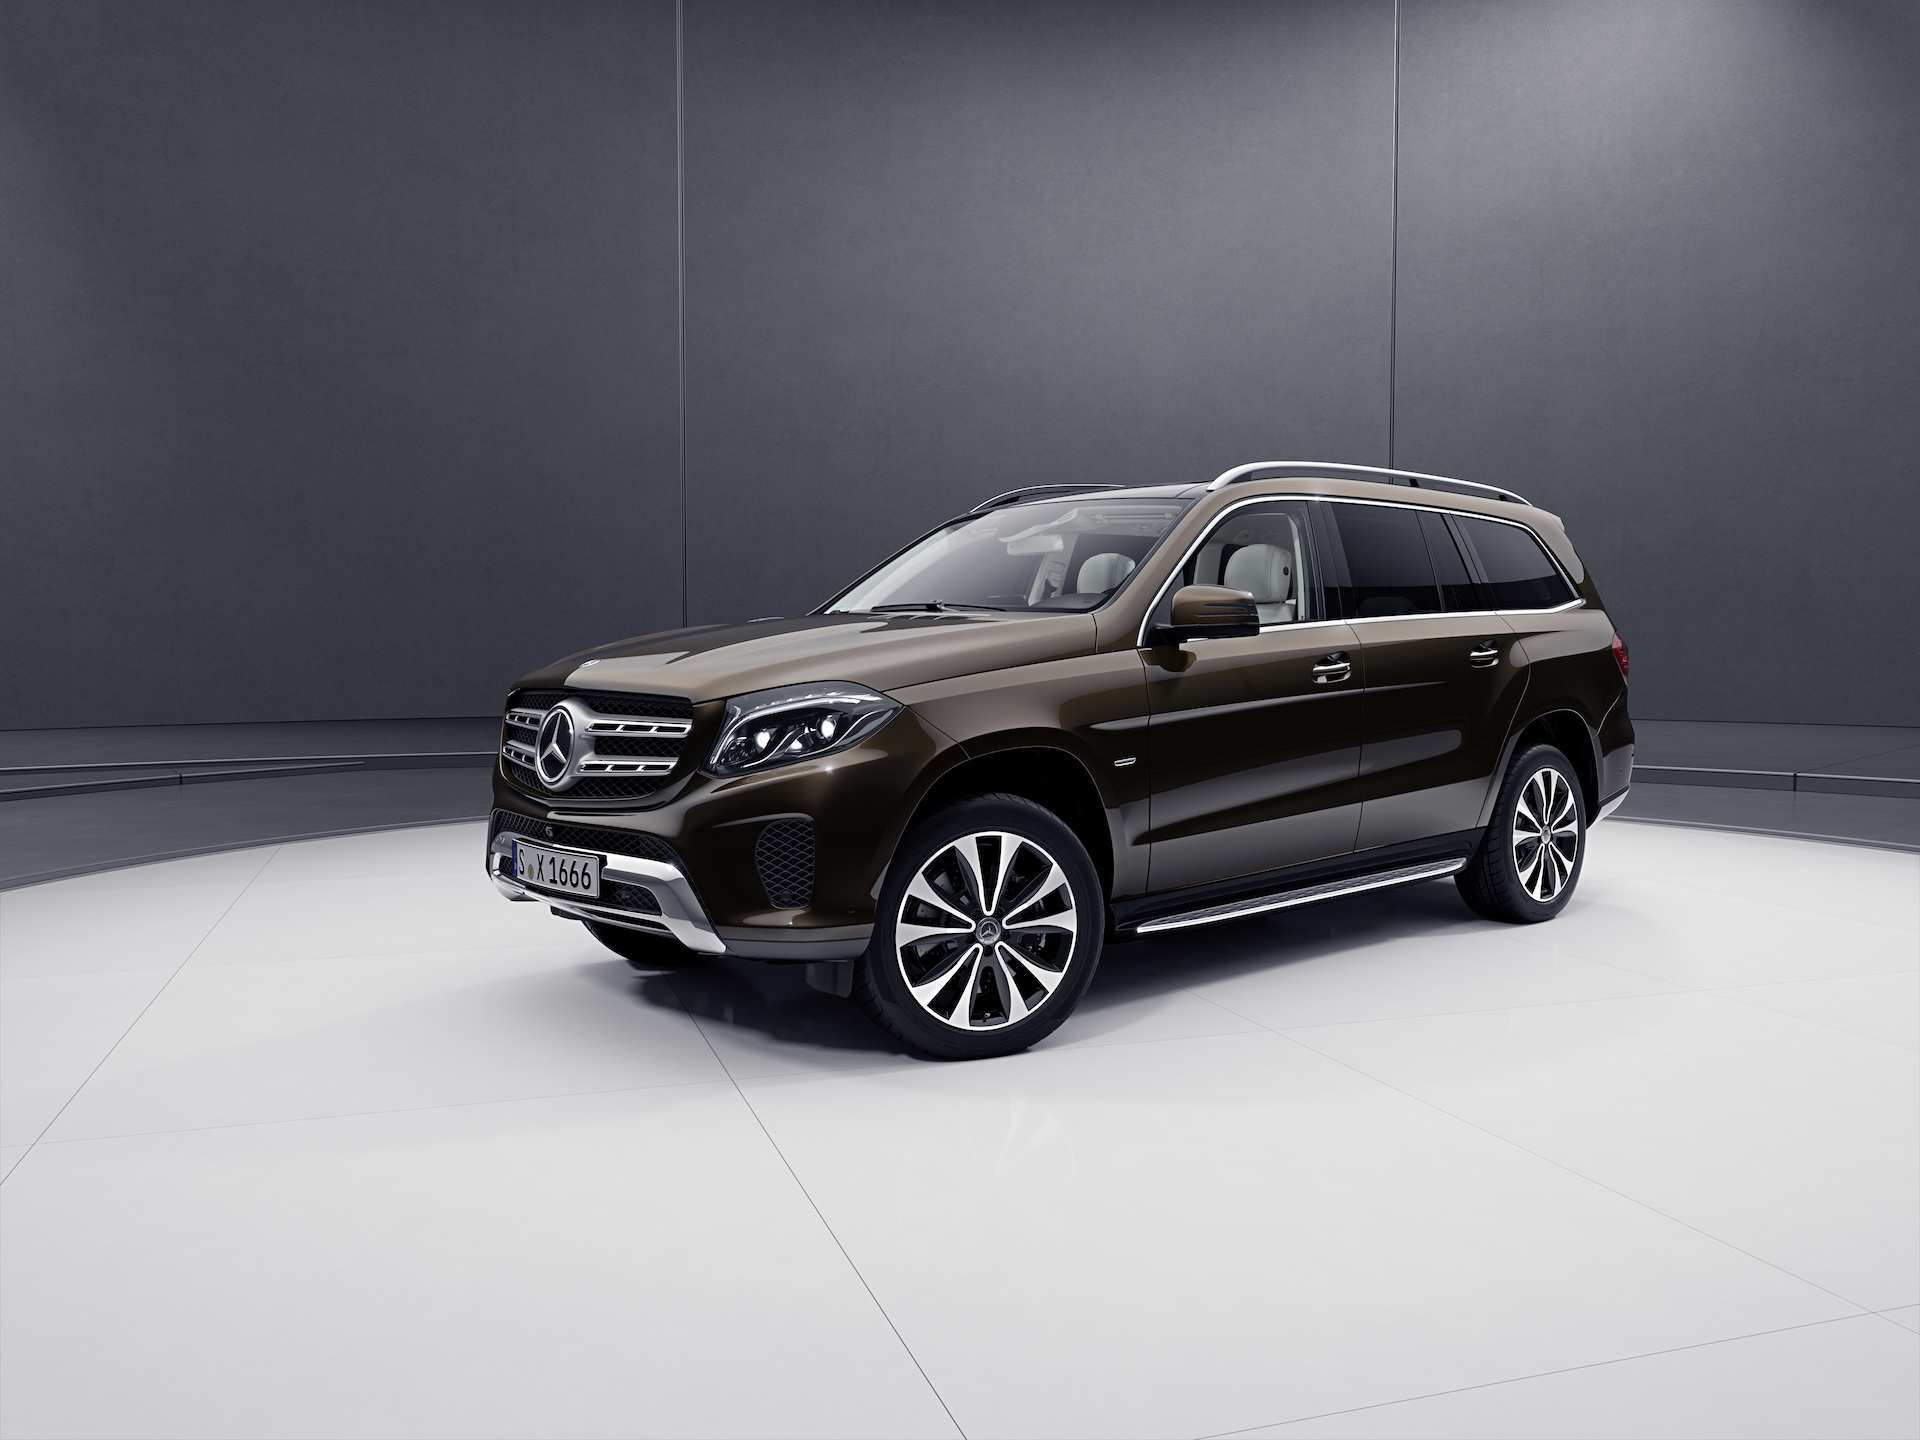 24 The Best 2019 Mercedes GLS Style